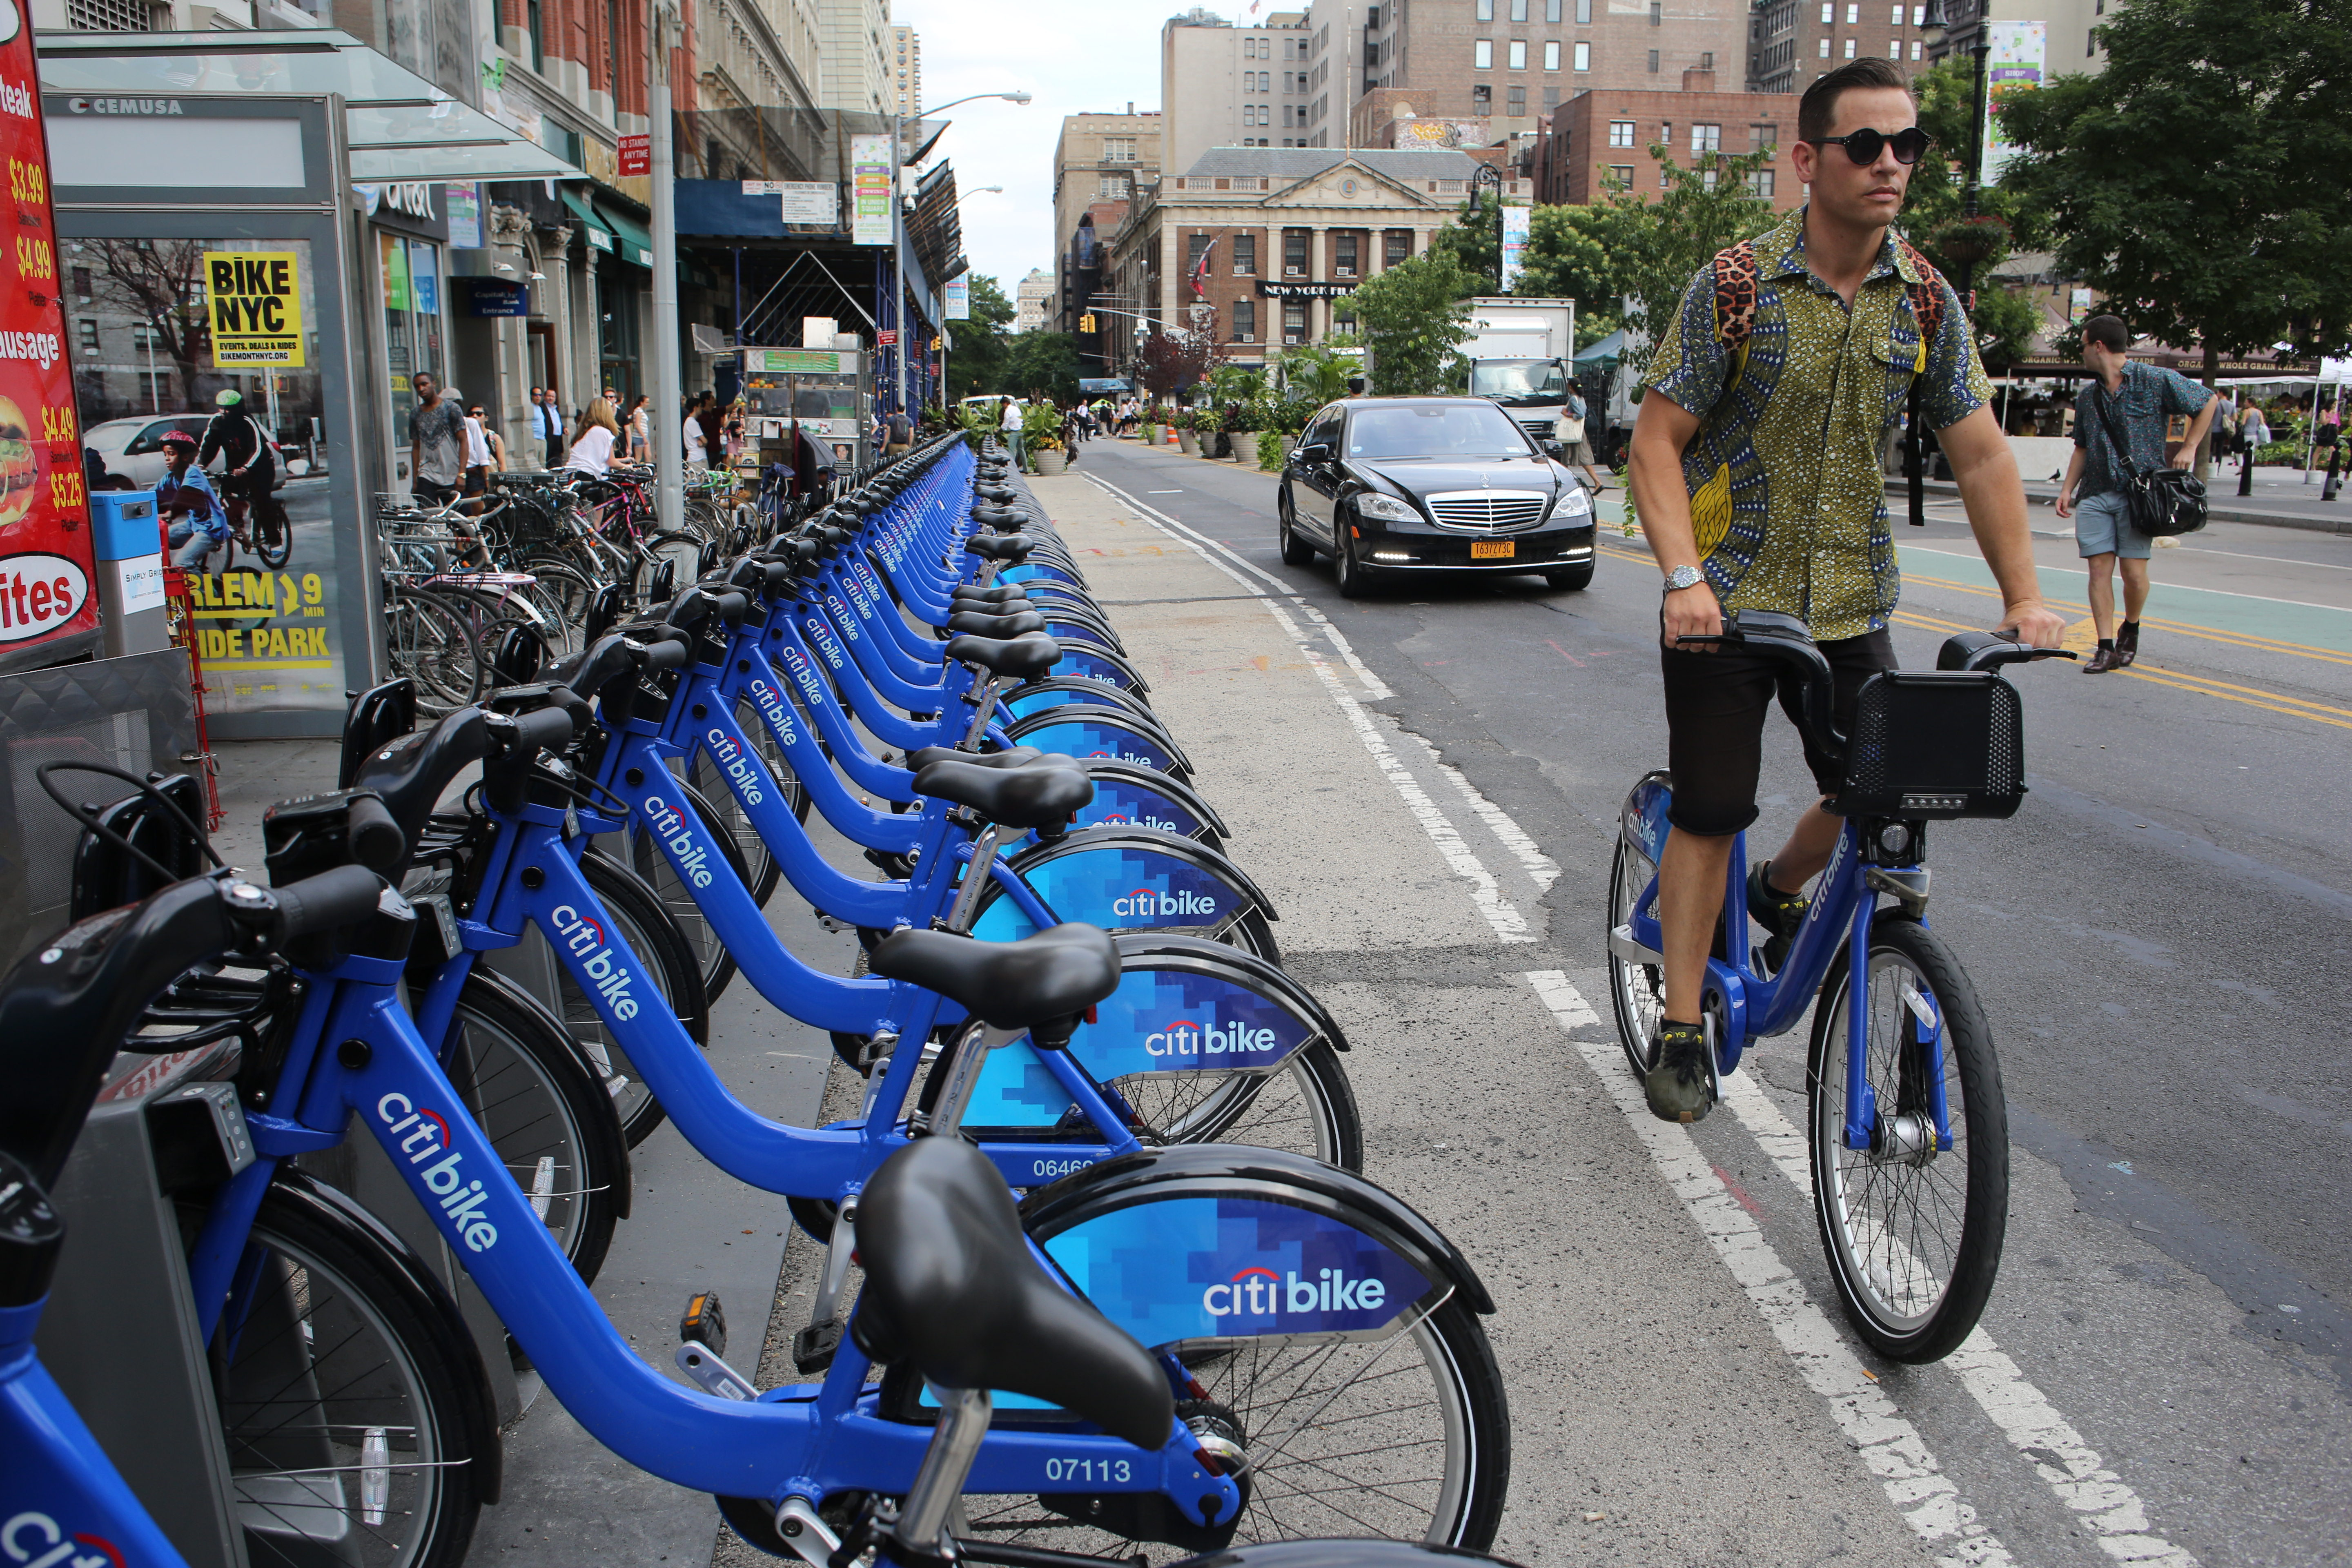 A rack of bright blue Citi Bikes. On the right, a man rides by the rack on a blue Citi Bike.